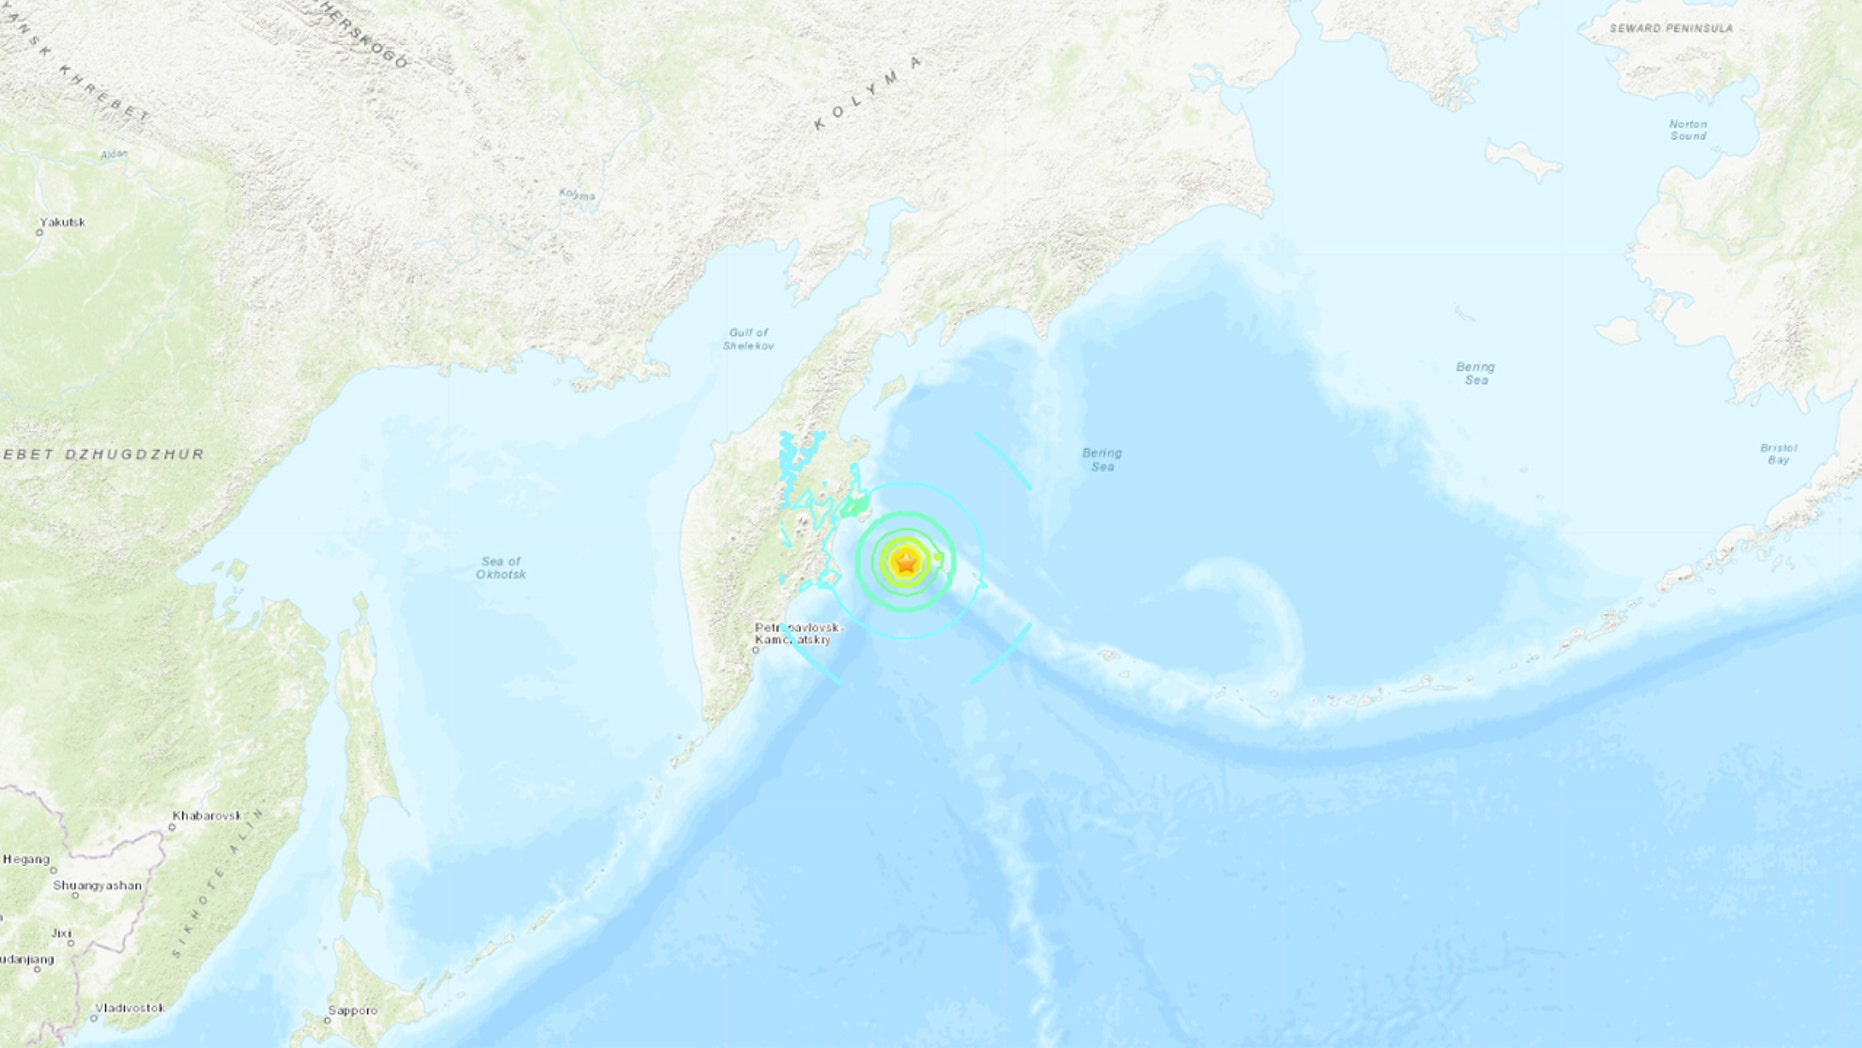 The 7.4 earthquake struck off the east coast of Russia early Friday.